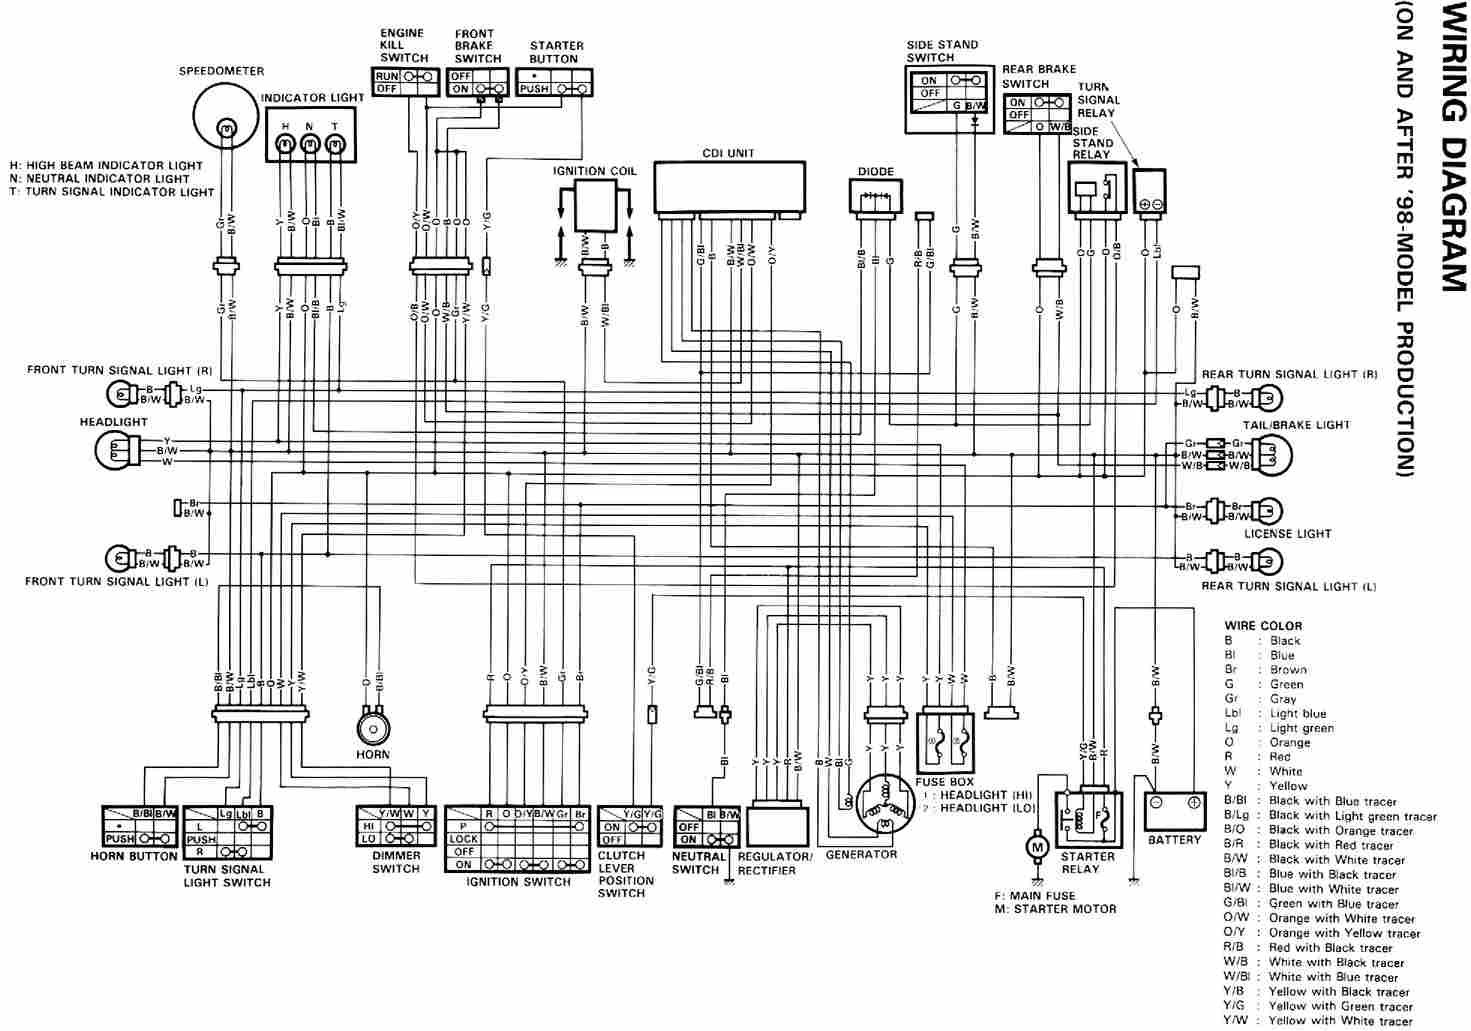 Motorcycle Cdi Ignition Wiring Diagram Motorcycle